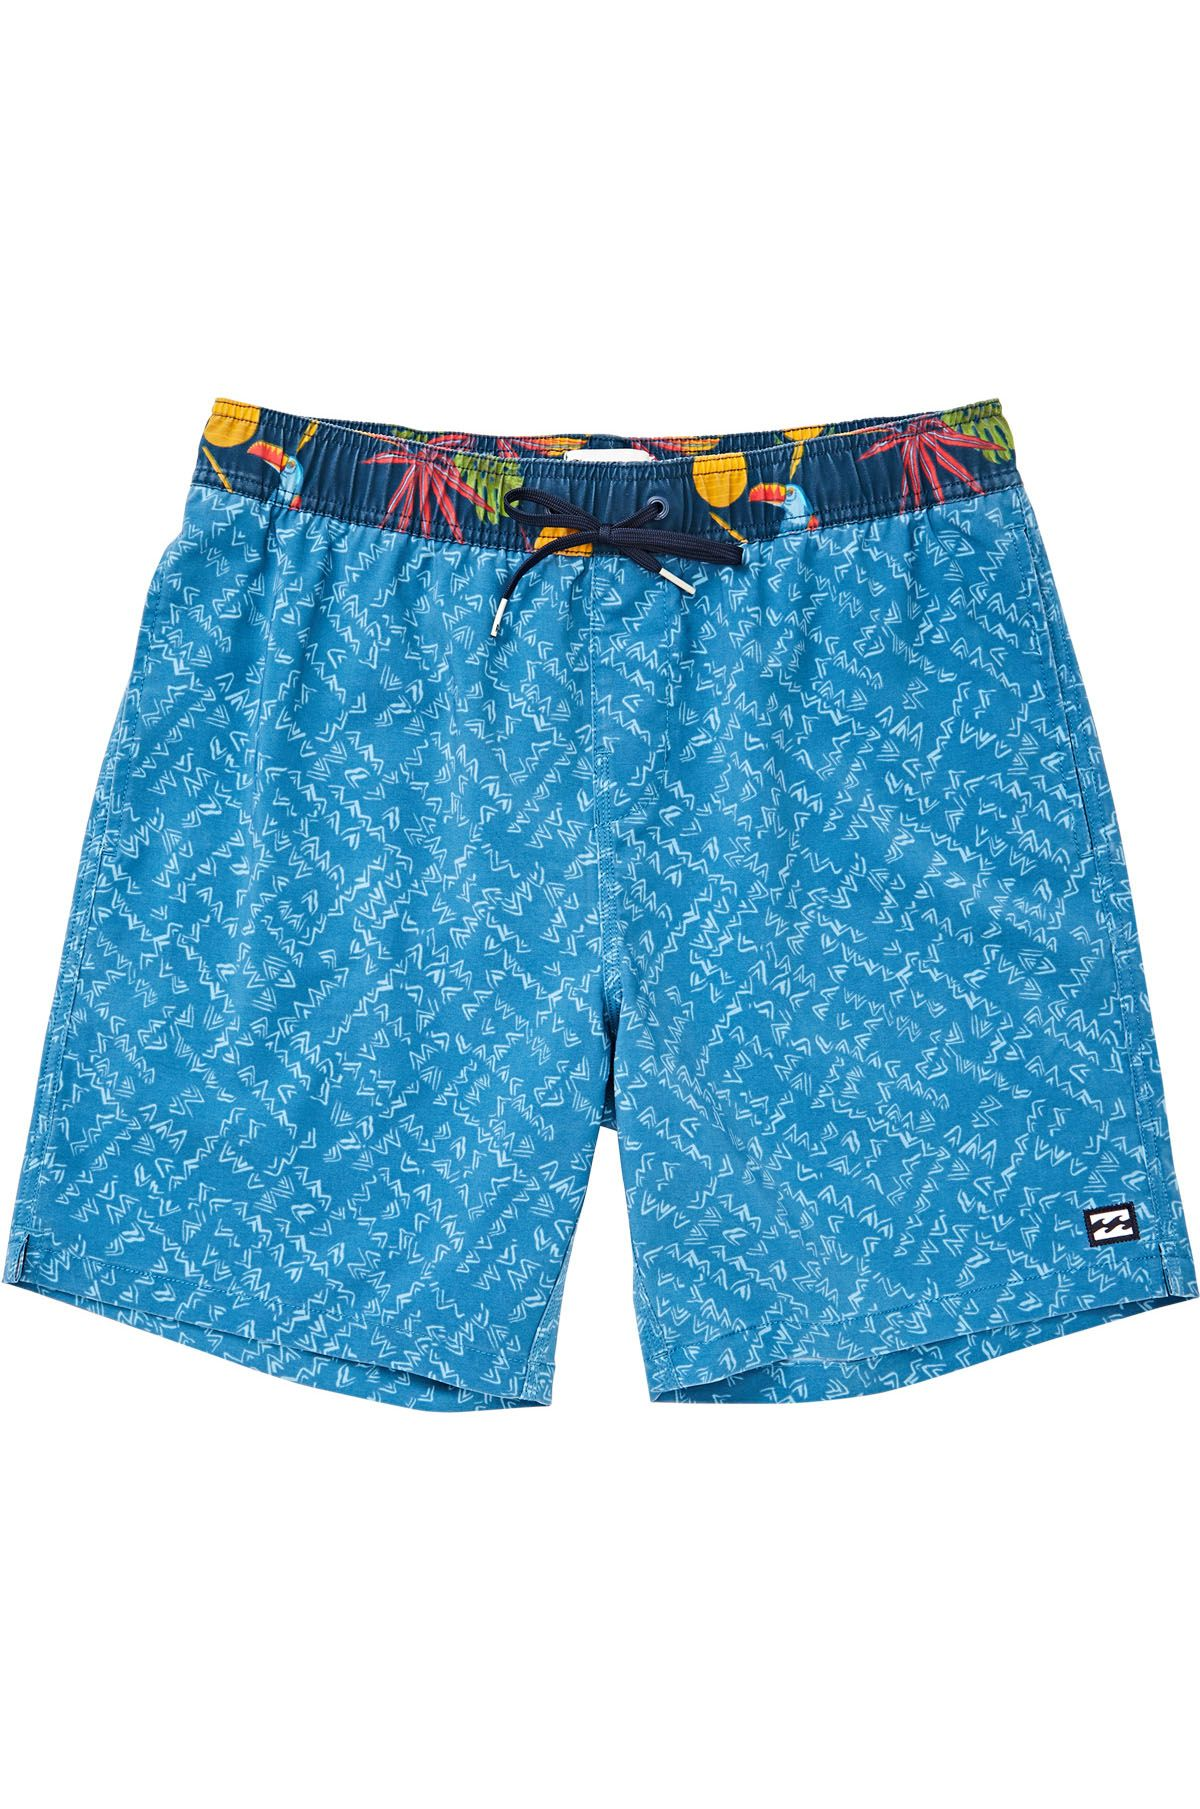 Boardshorts Billabong SUNDAYS LAYBACK Harbor Blue